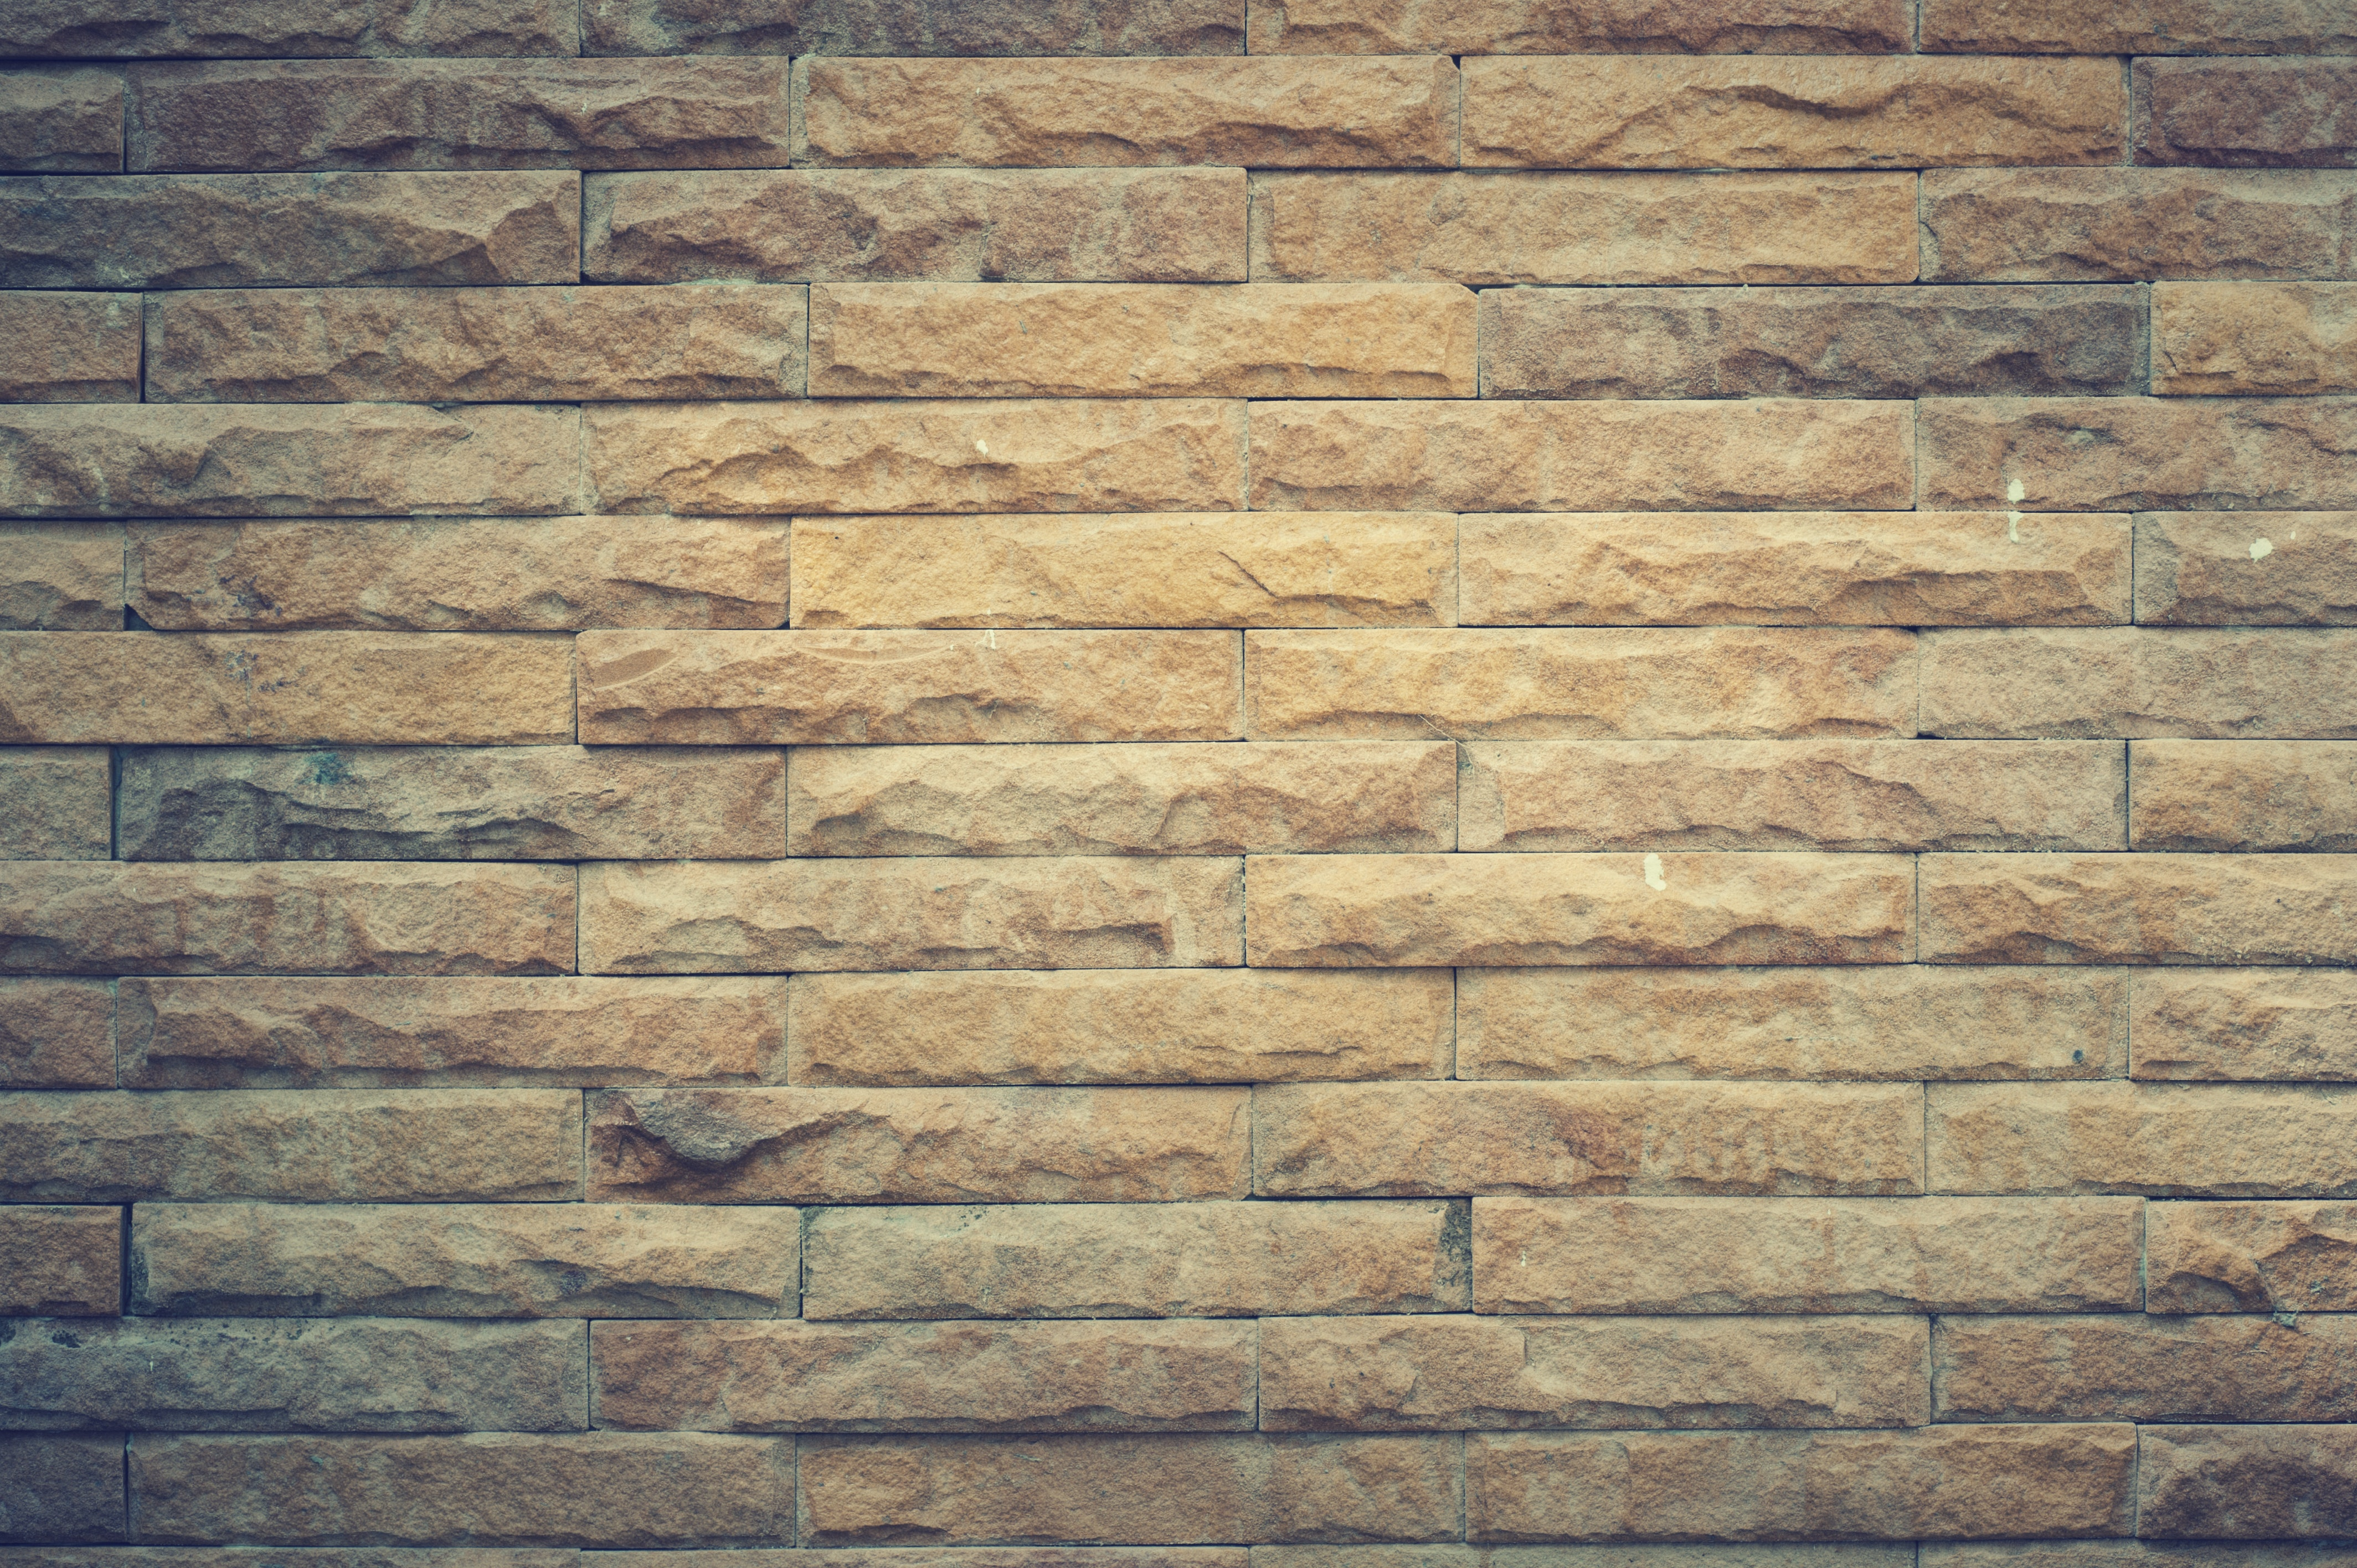 Yellow Brick Wall, Aged, Rectangle, Rough, Stained, HQ Photo